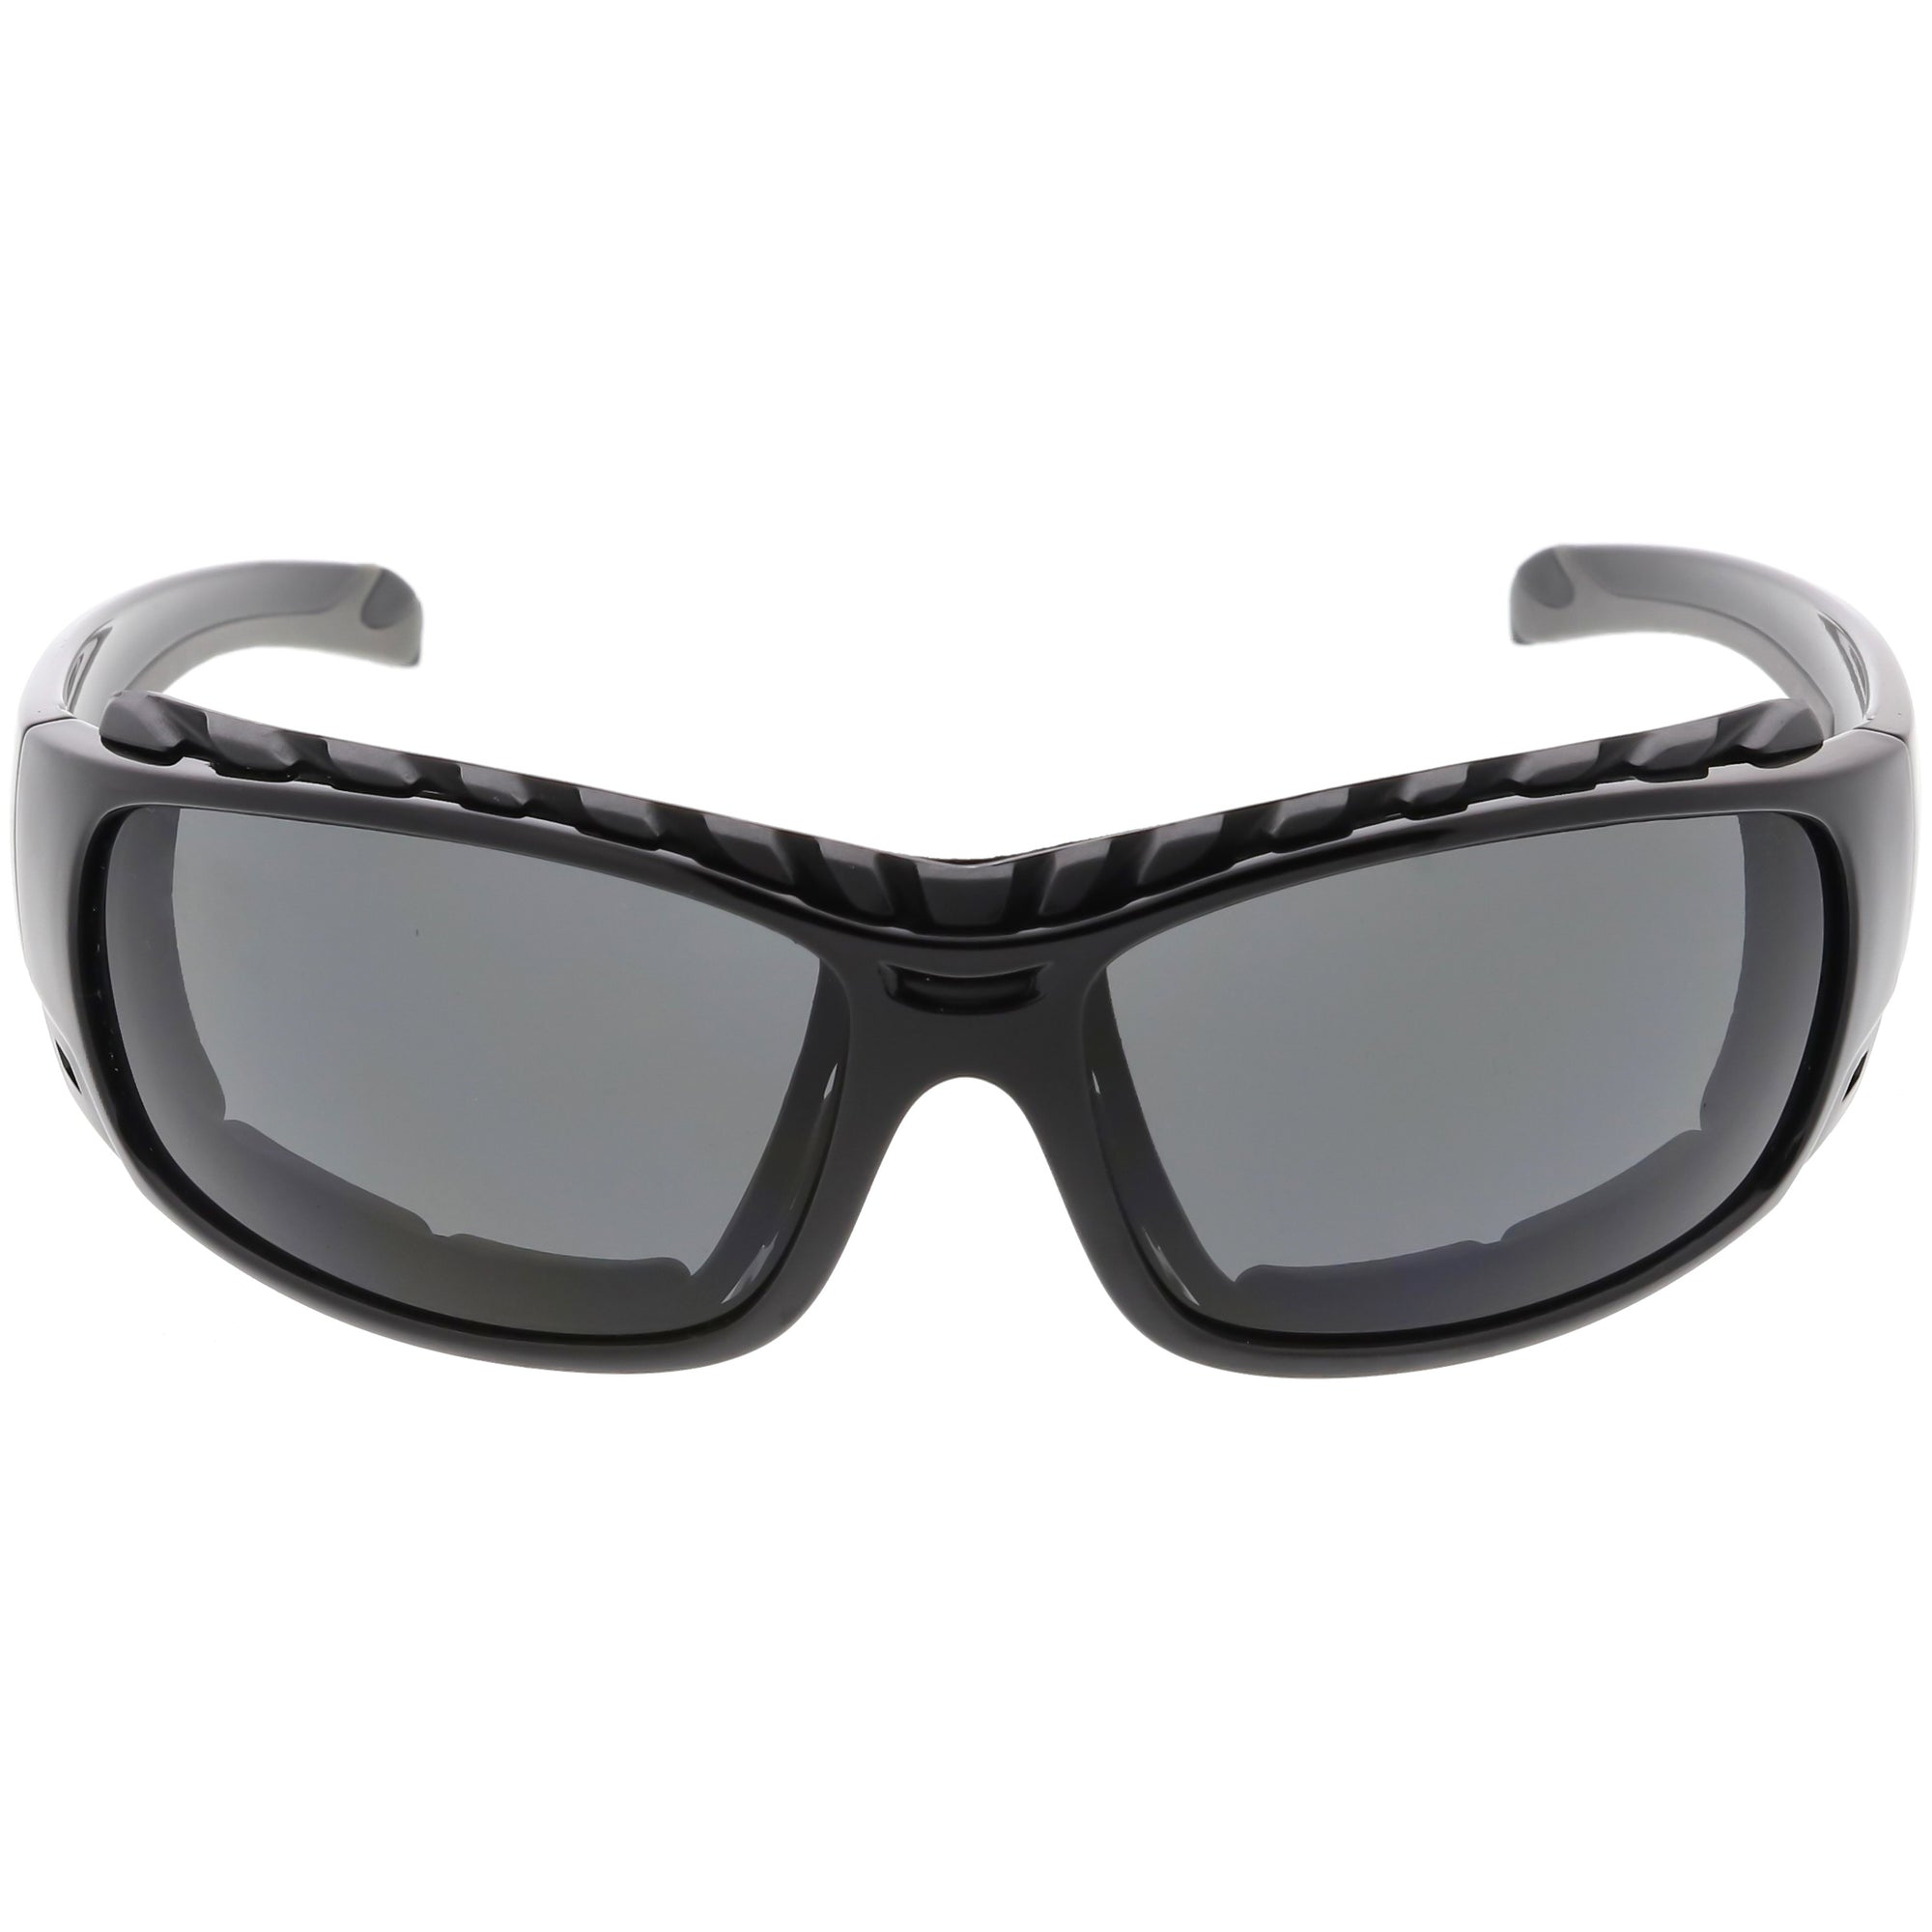 Premium Protective TR-90 Foam Padded Safety Goggles C805